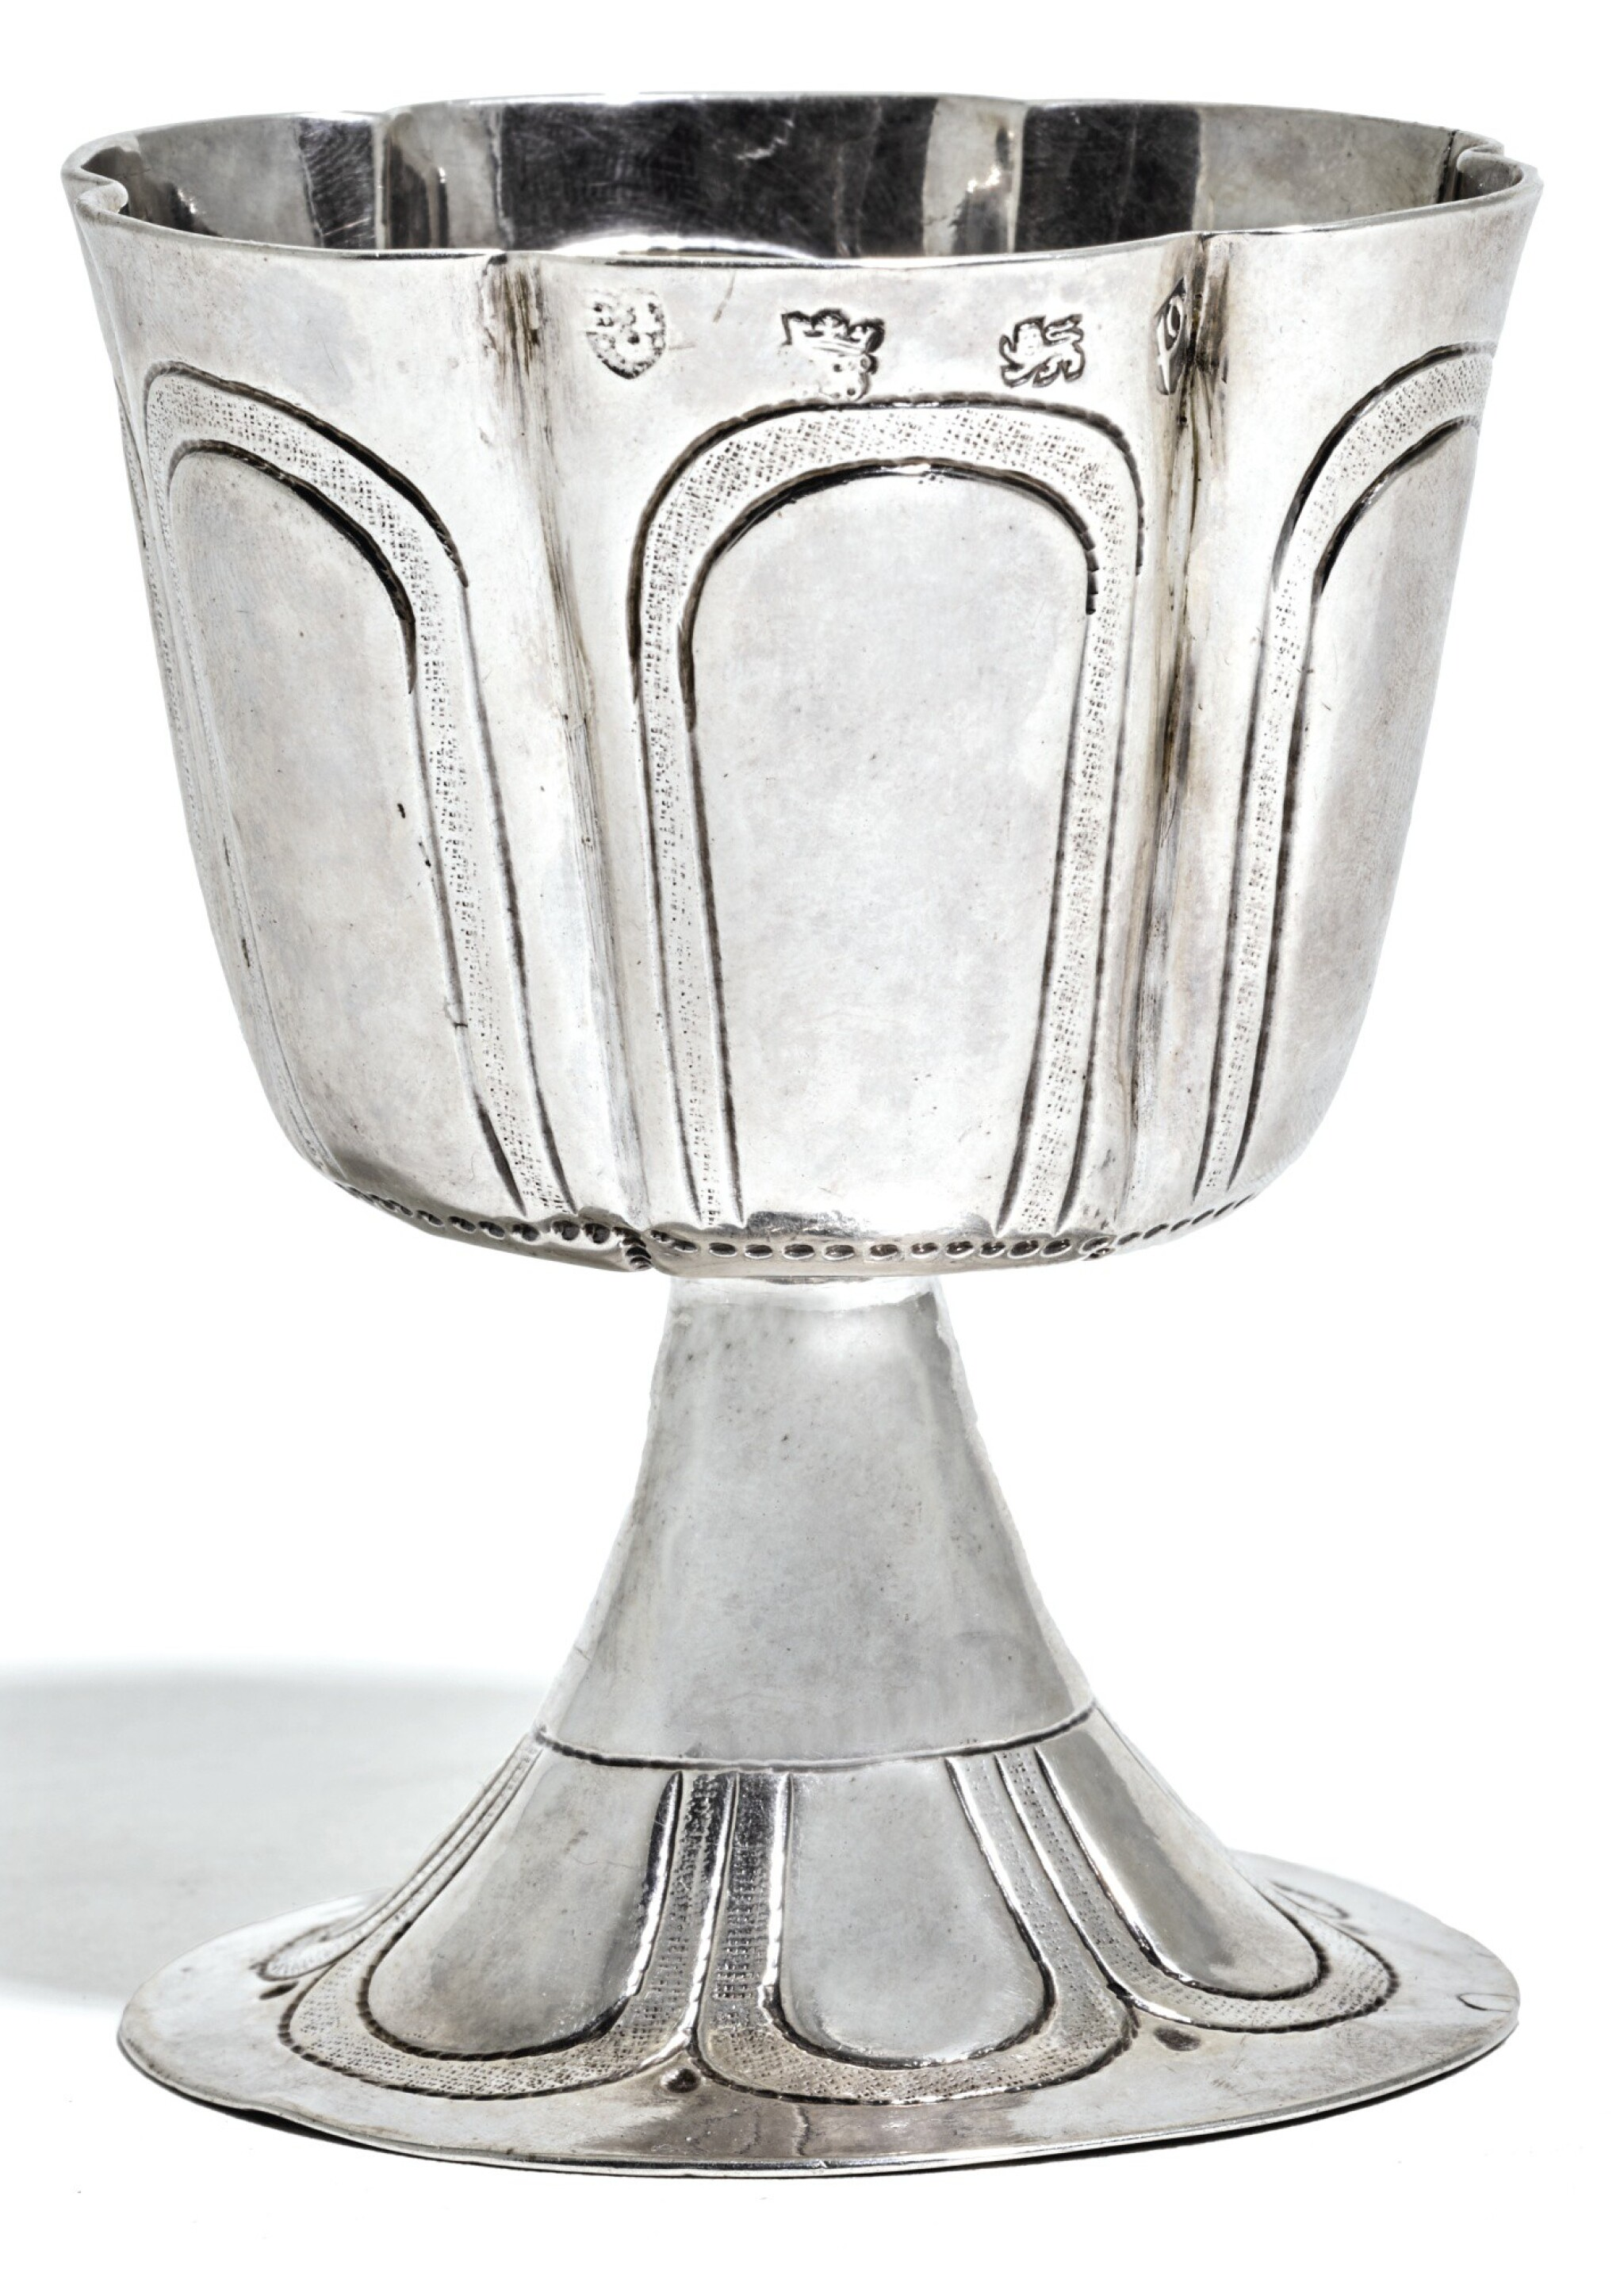 View 1 of Lot 108. A COMMONWEALTH SILVER WINE CUP, ATTRIBUTED TO EDWARD TREENE, LONDON, 1652.